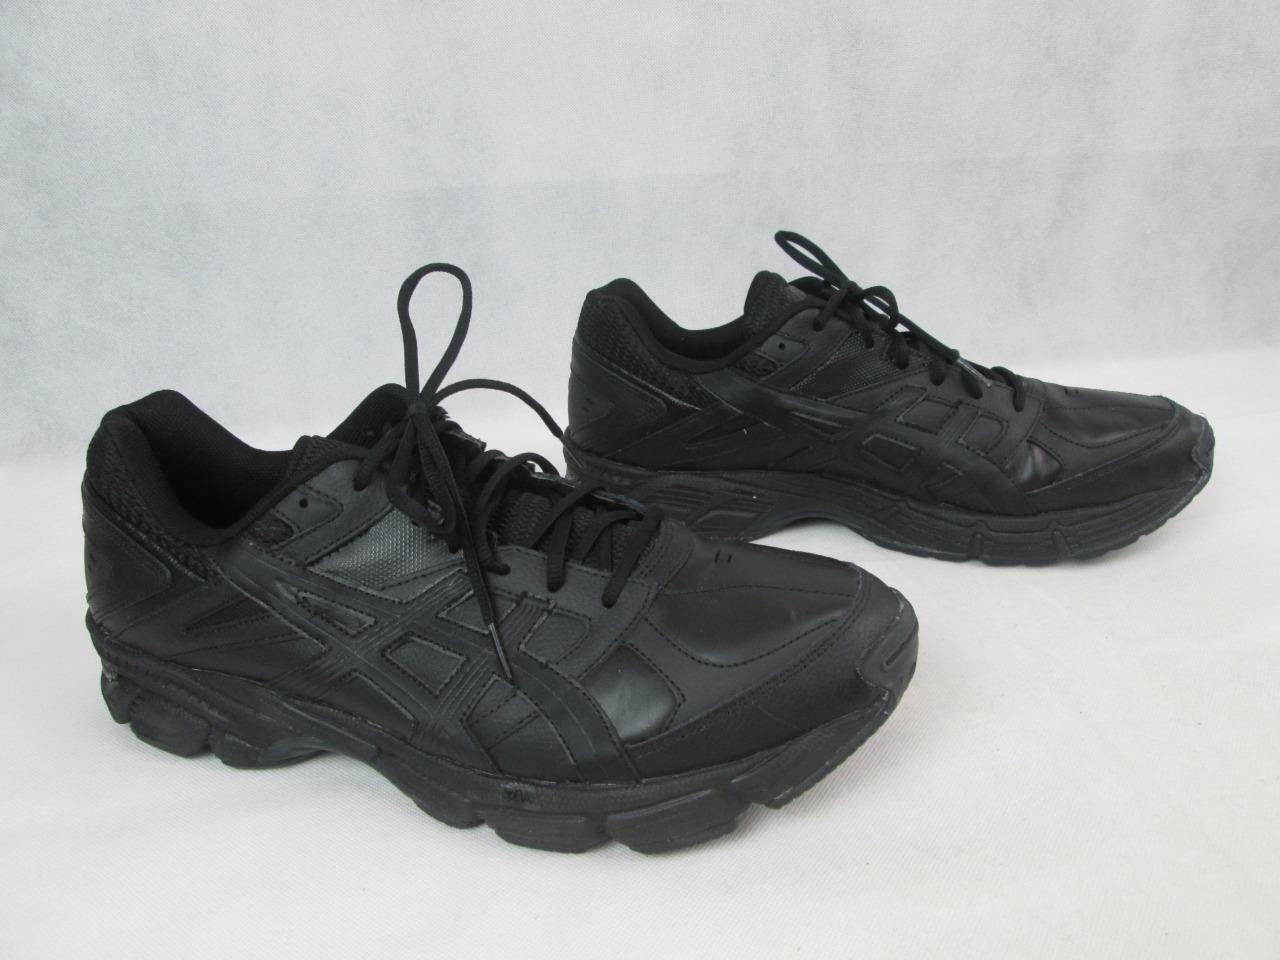 ASICS MENS S523L BLACK LEATHER LACE UP WALKING RUNNING SNEAKERS SHOES 13 NEW